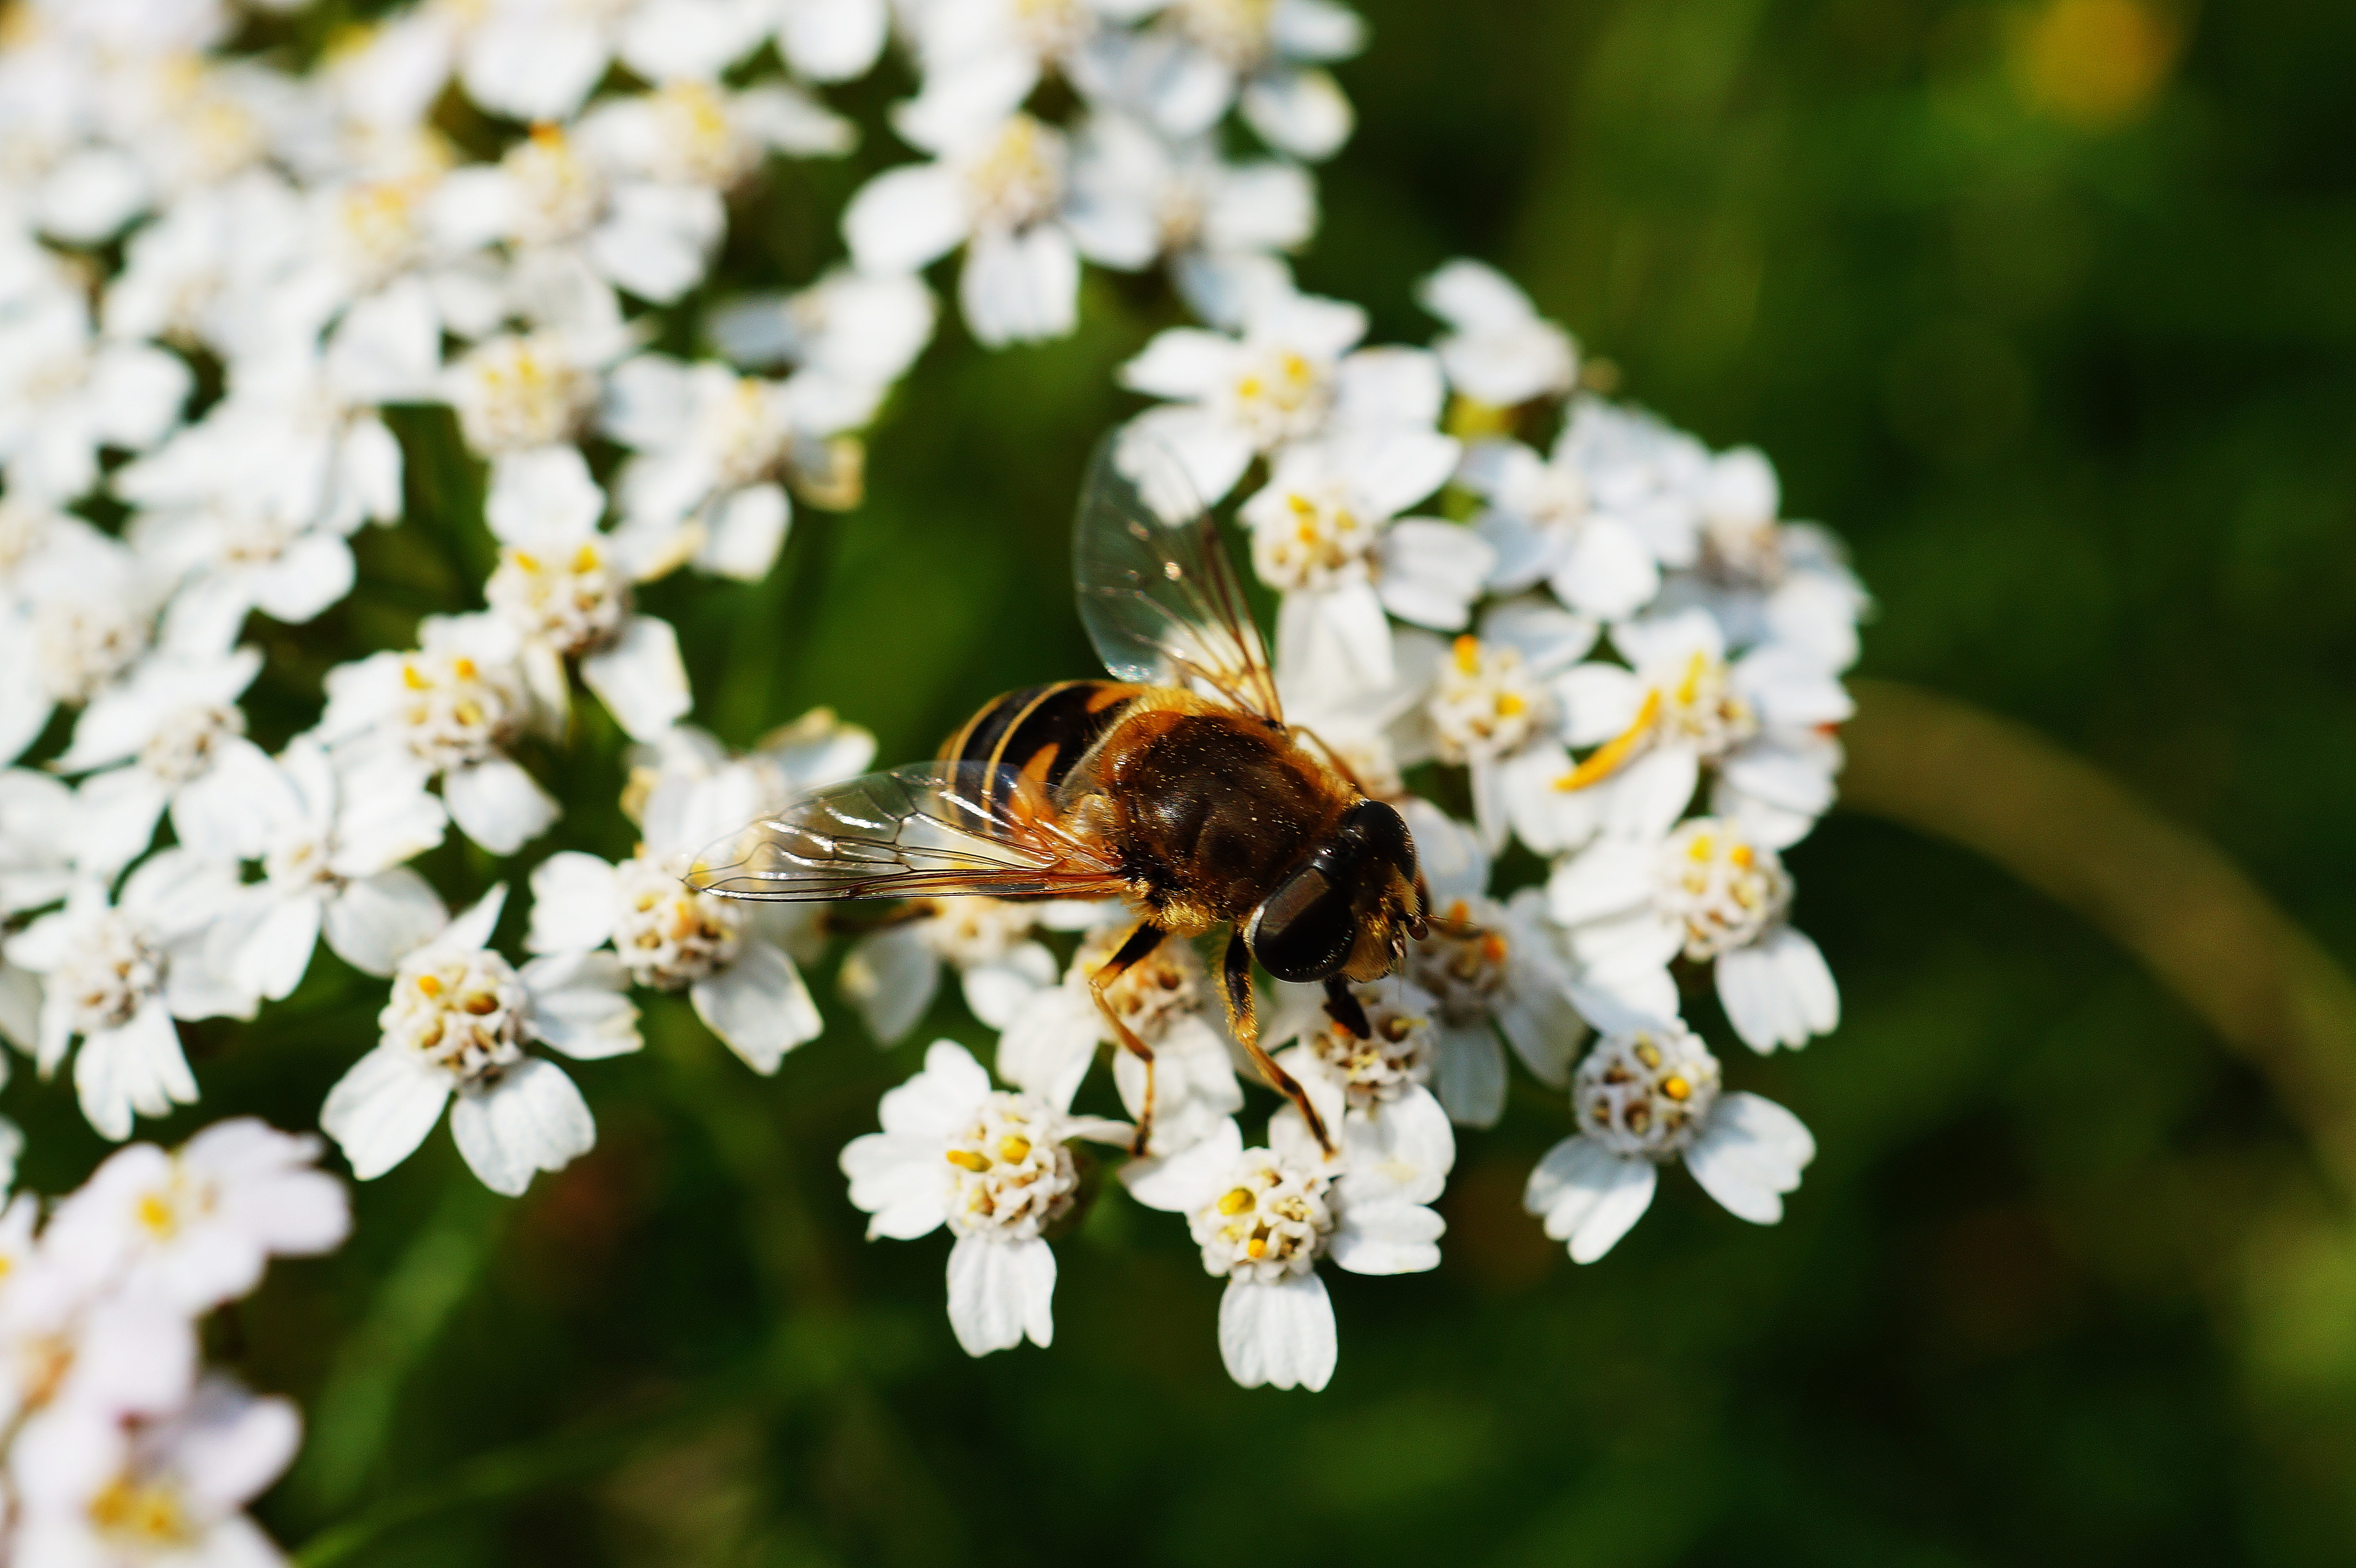 Brown and black honey bee on white flower near green plants during daytime photo